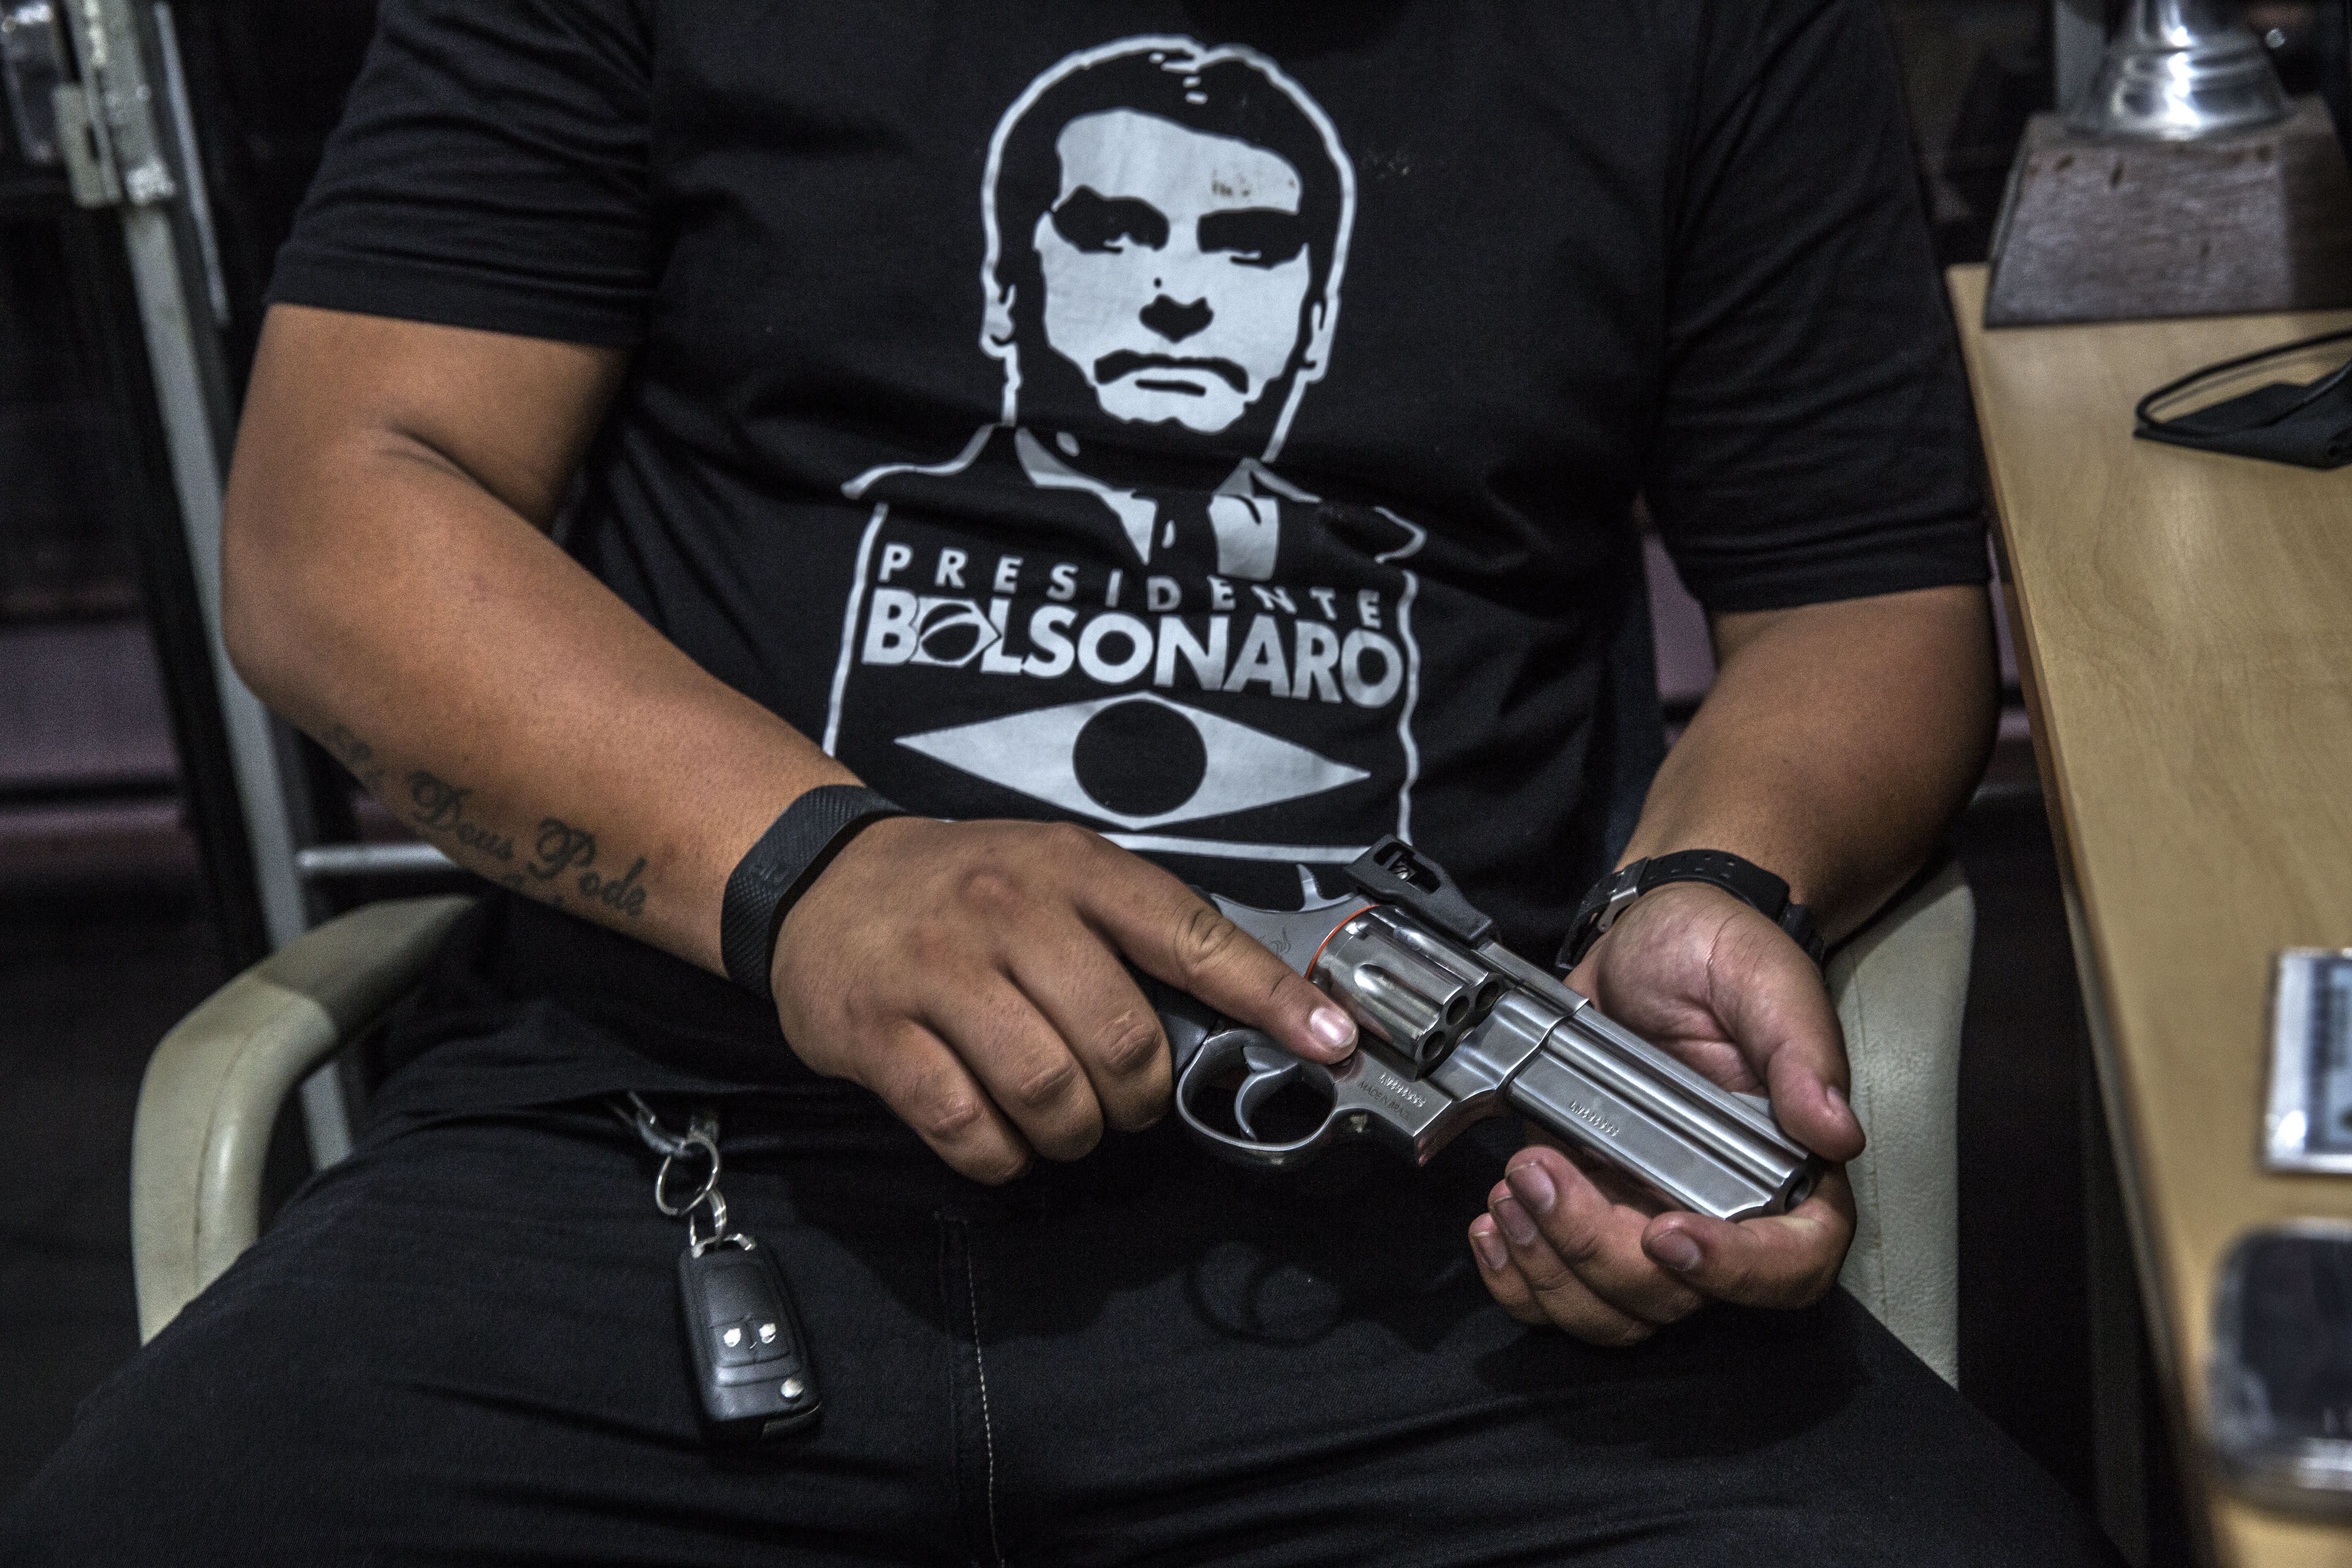 A customer wearing a shirt in support of Jair Bolsonaro, Brazil's president, views a Forjas Taurus SA firearm for sale at a gun shop in Sao Joao do Meriti, Brazil, on Monday, Jan. 14, 2018. Bolsonaro signed a decree loosening the country's restrictive gun regulations, and hinted at further measures to arm law-abiding citizens to combat rampant crime. Photographer: Dado Galdieri/Bloomberg via Getty Images